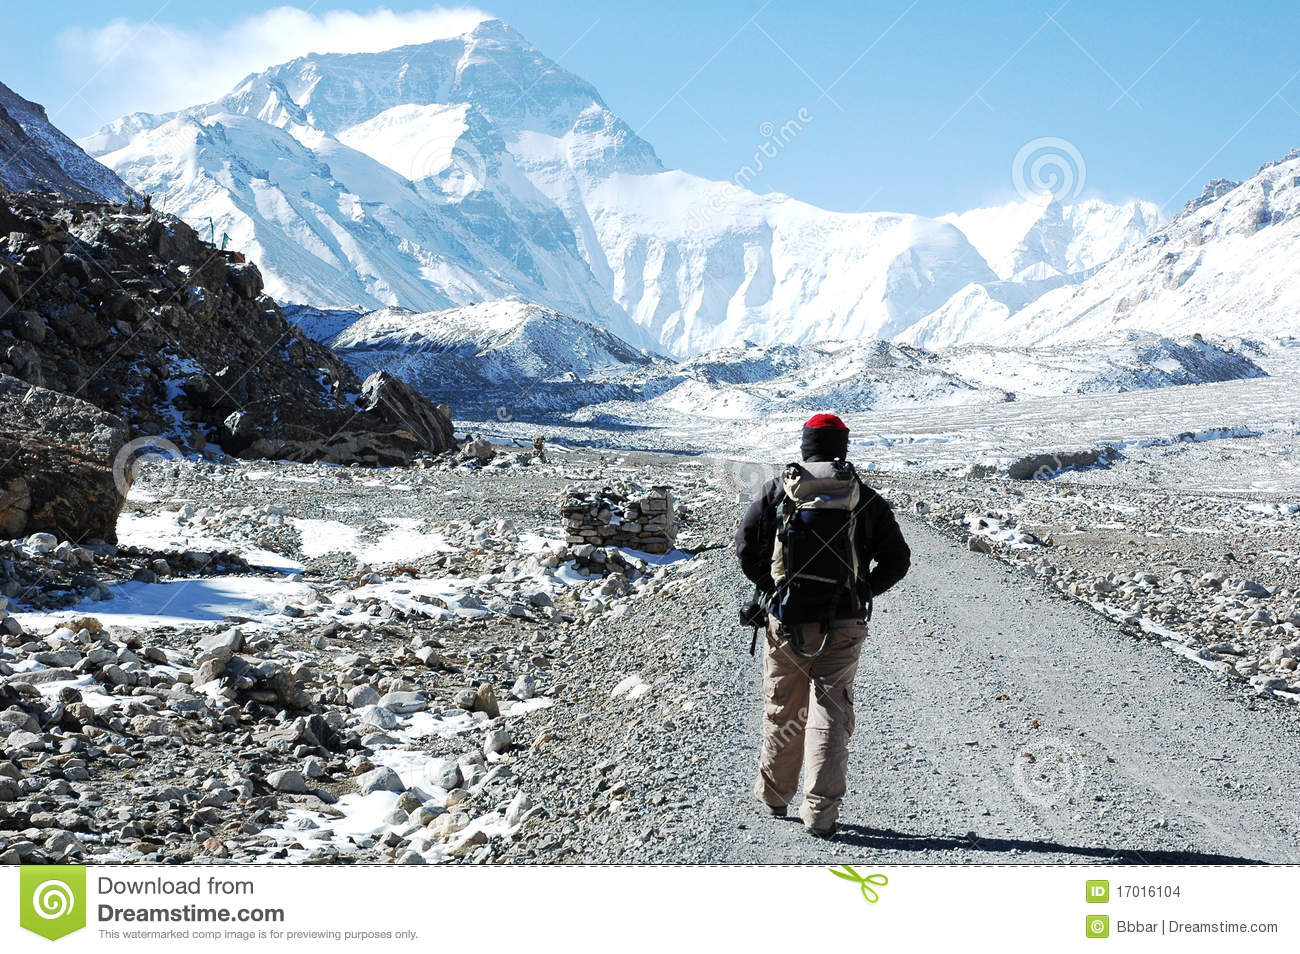 Hiking to the BC of Everest